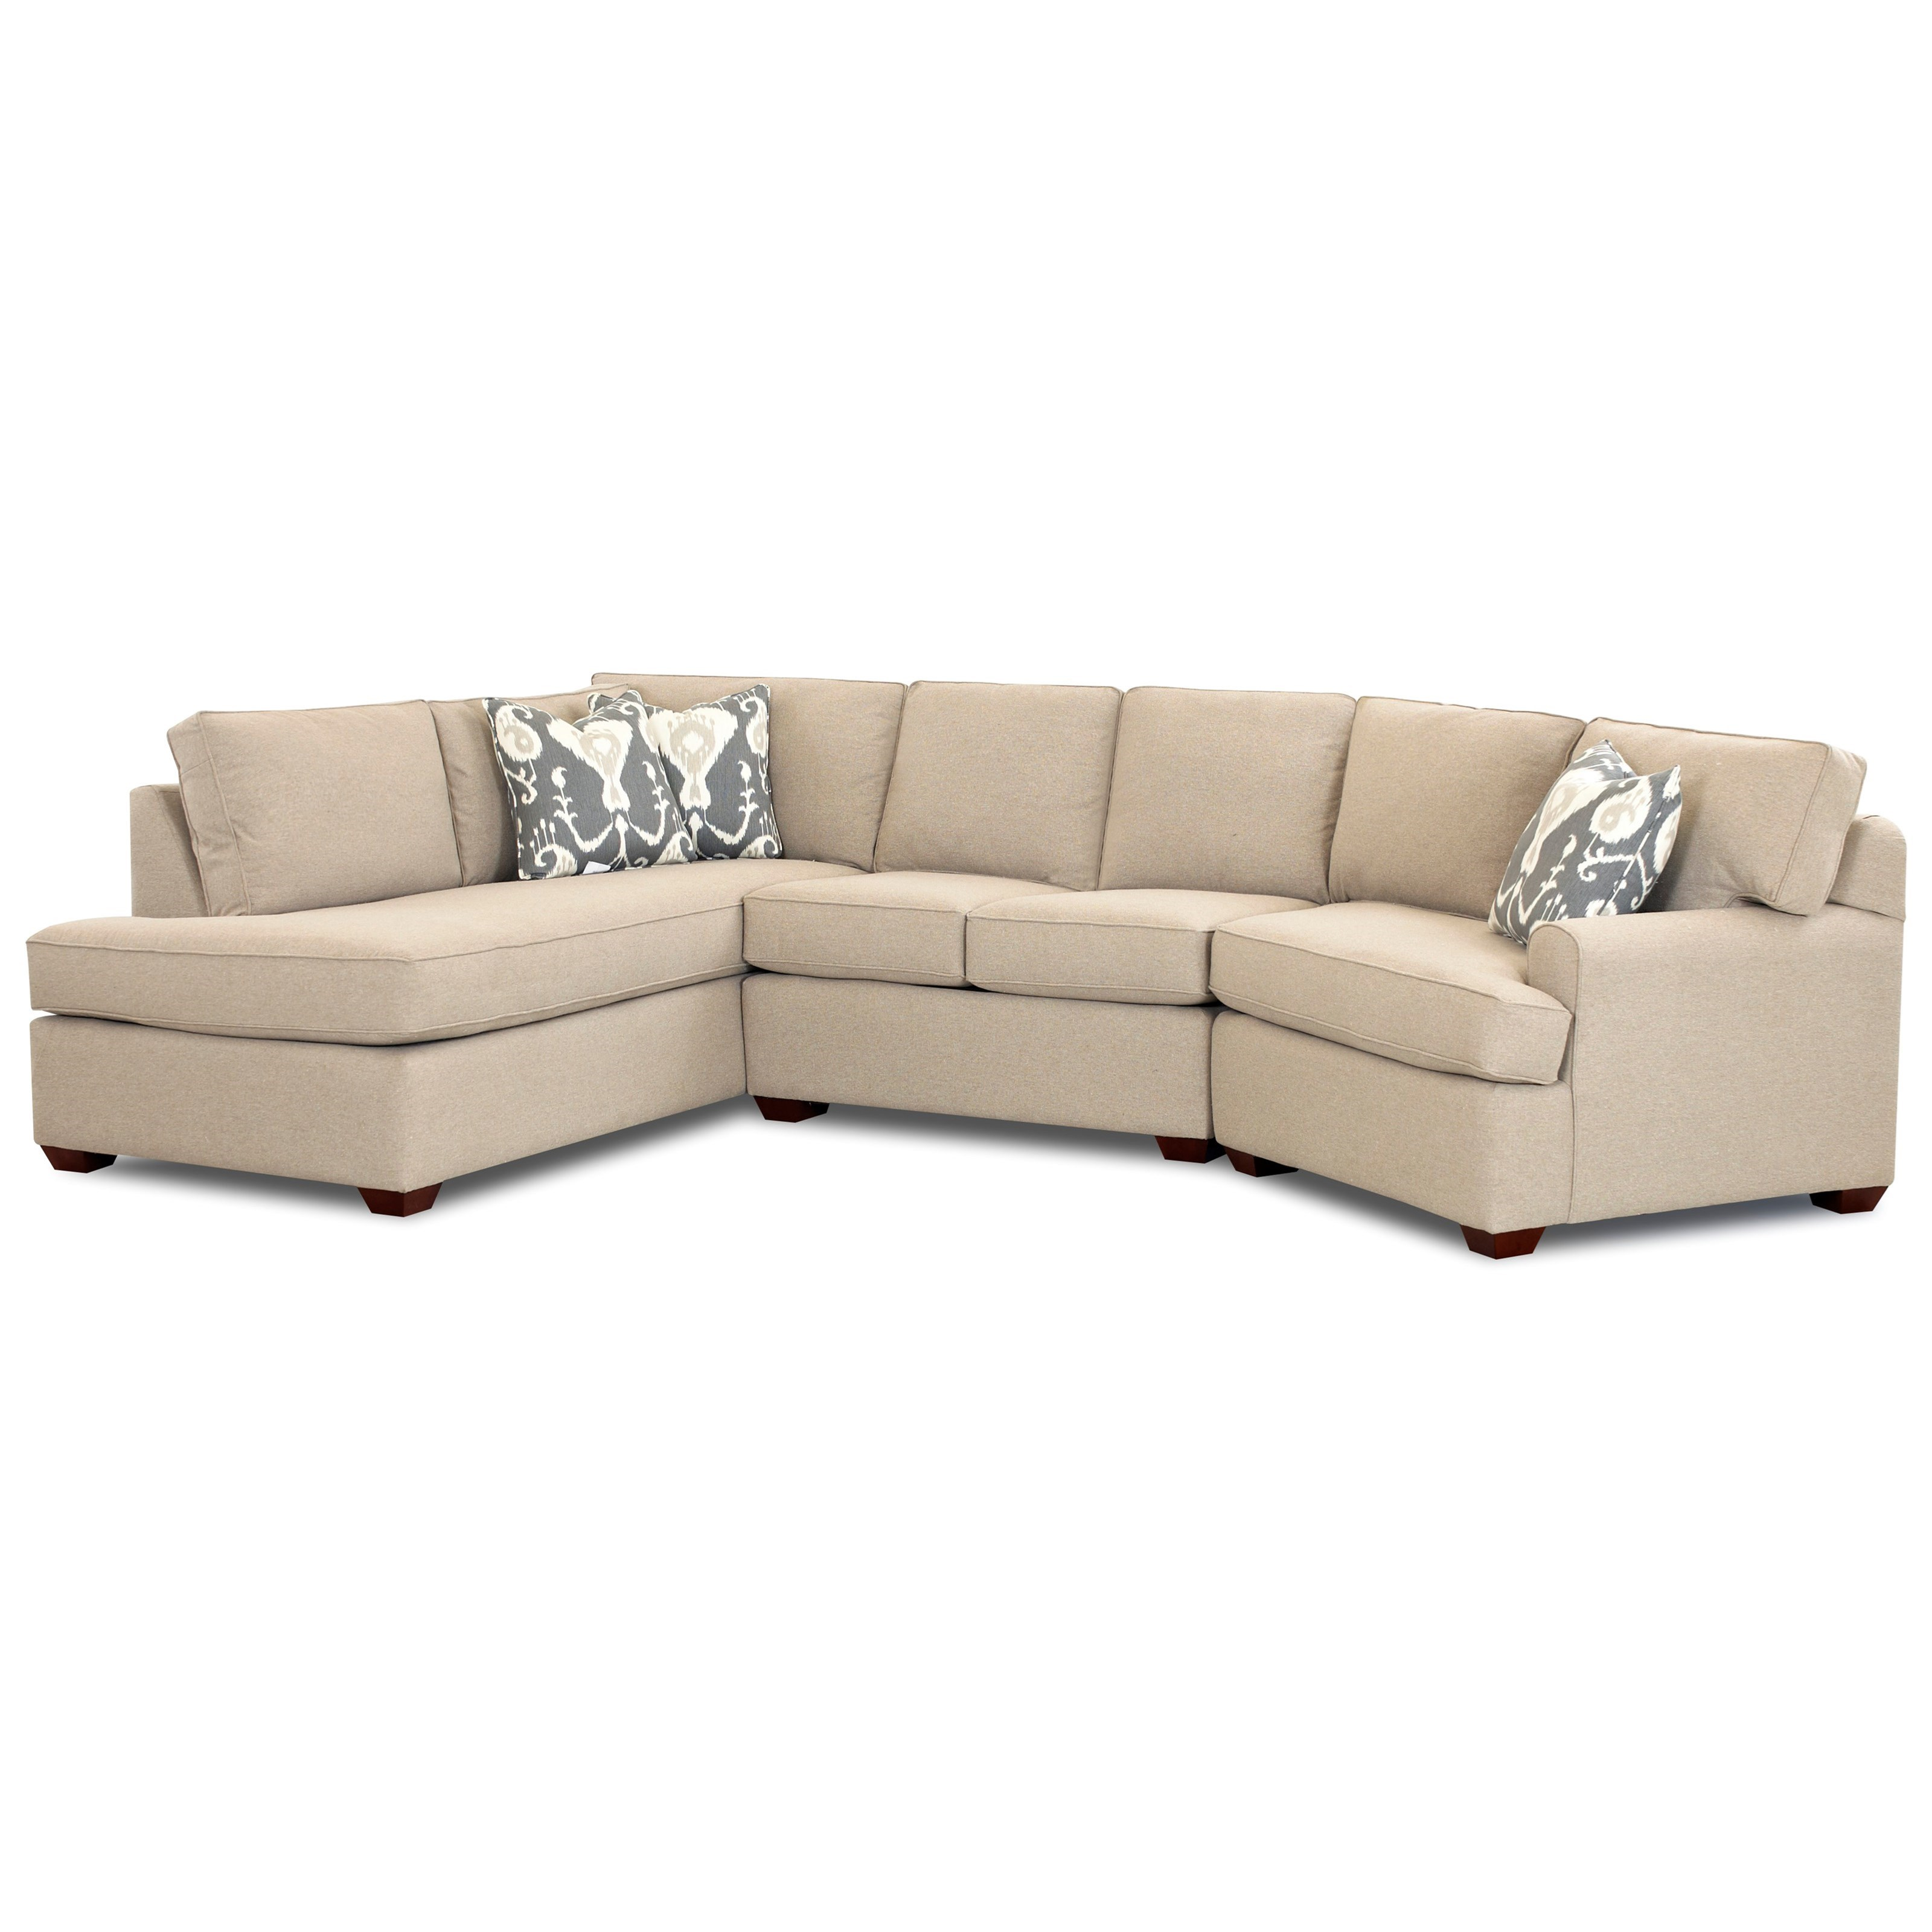 Klaussner Hybrid Sectional Sofa With Left Facing Sofa